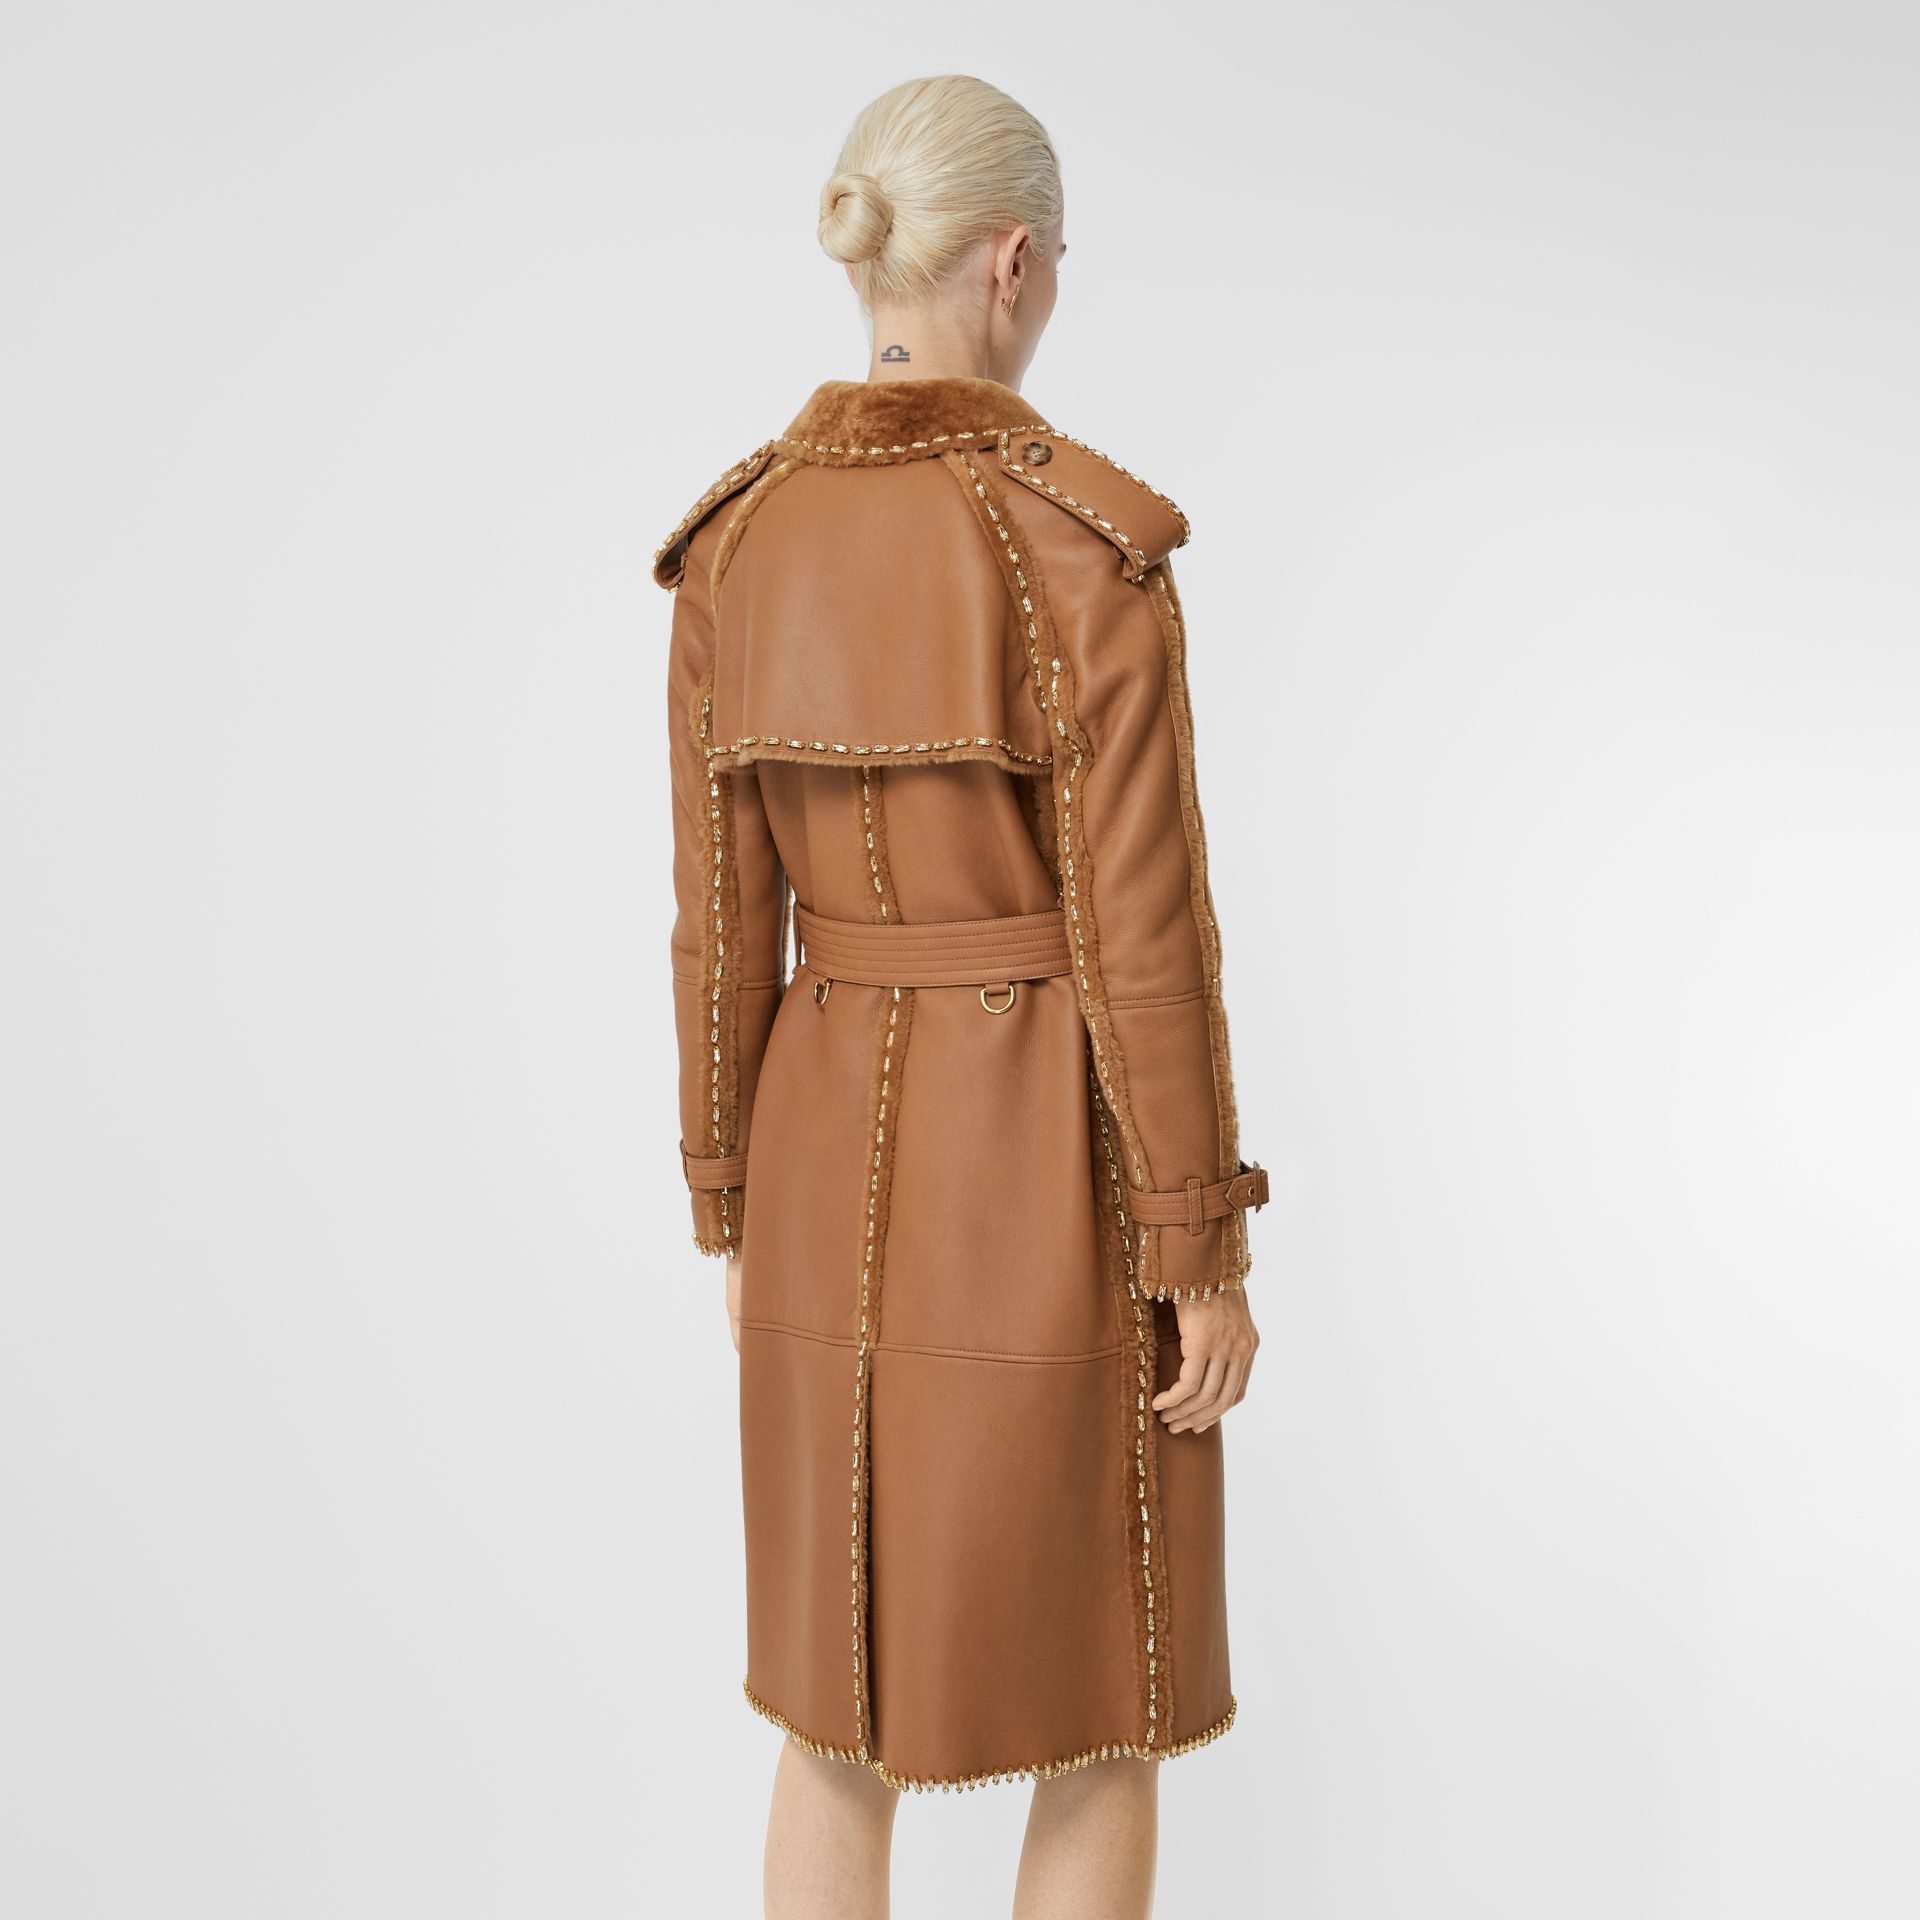 Embellished Shearling Trench Coat in Warm Camel - Women | Burberry - gallery image 2